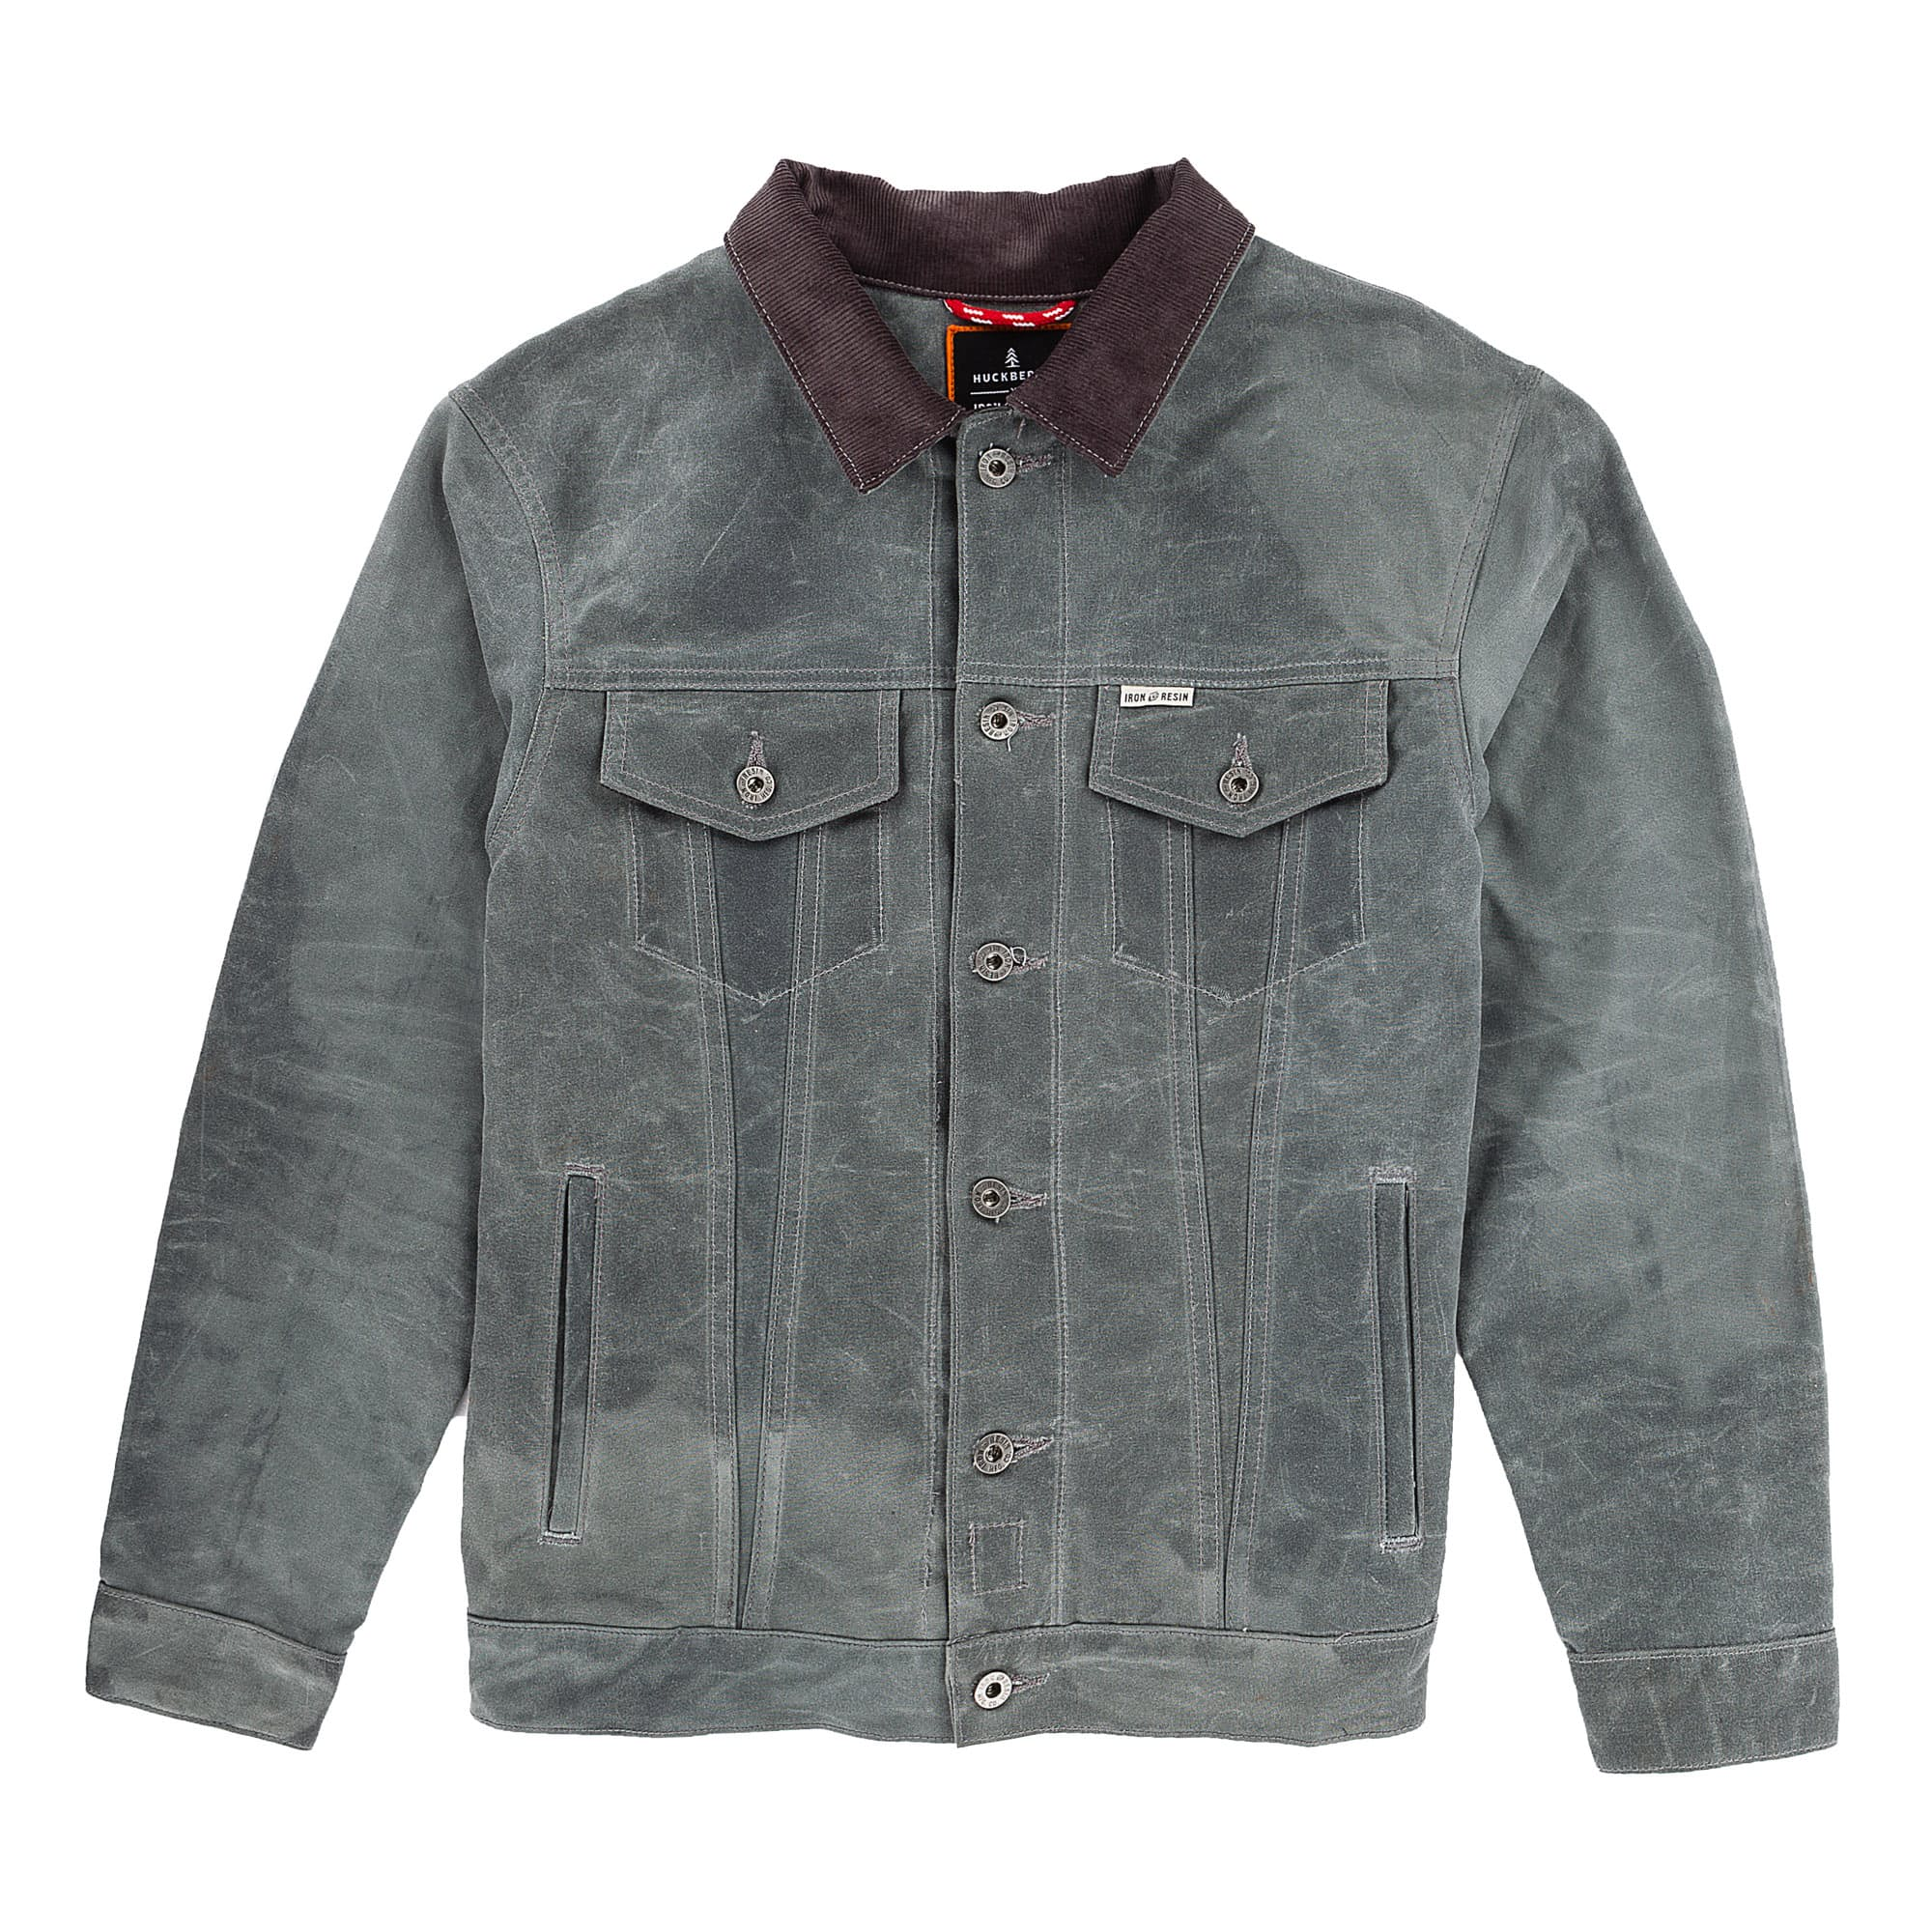 Cptqiavl8y iron and resin rambler jacket exclusive 0 original